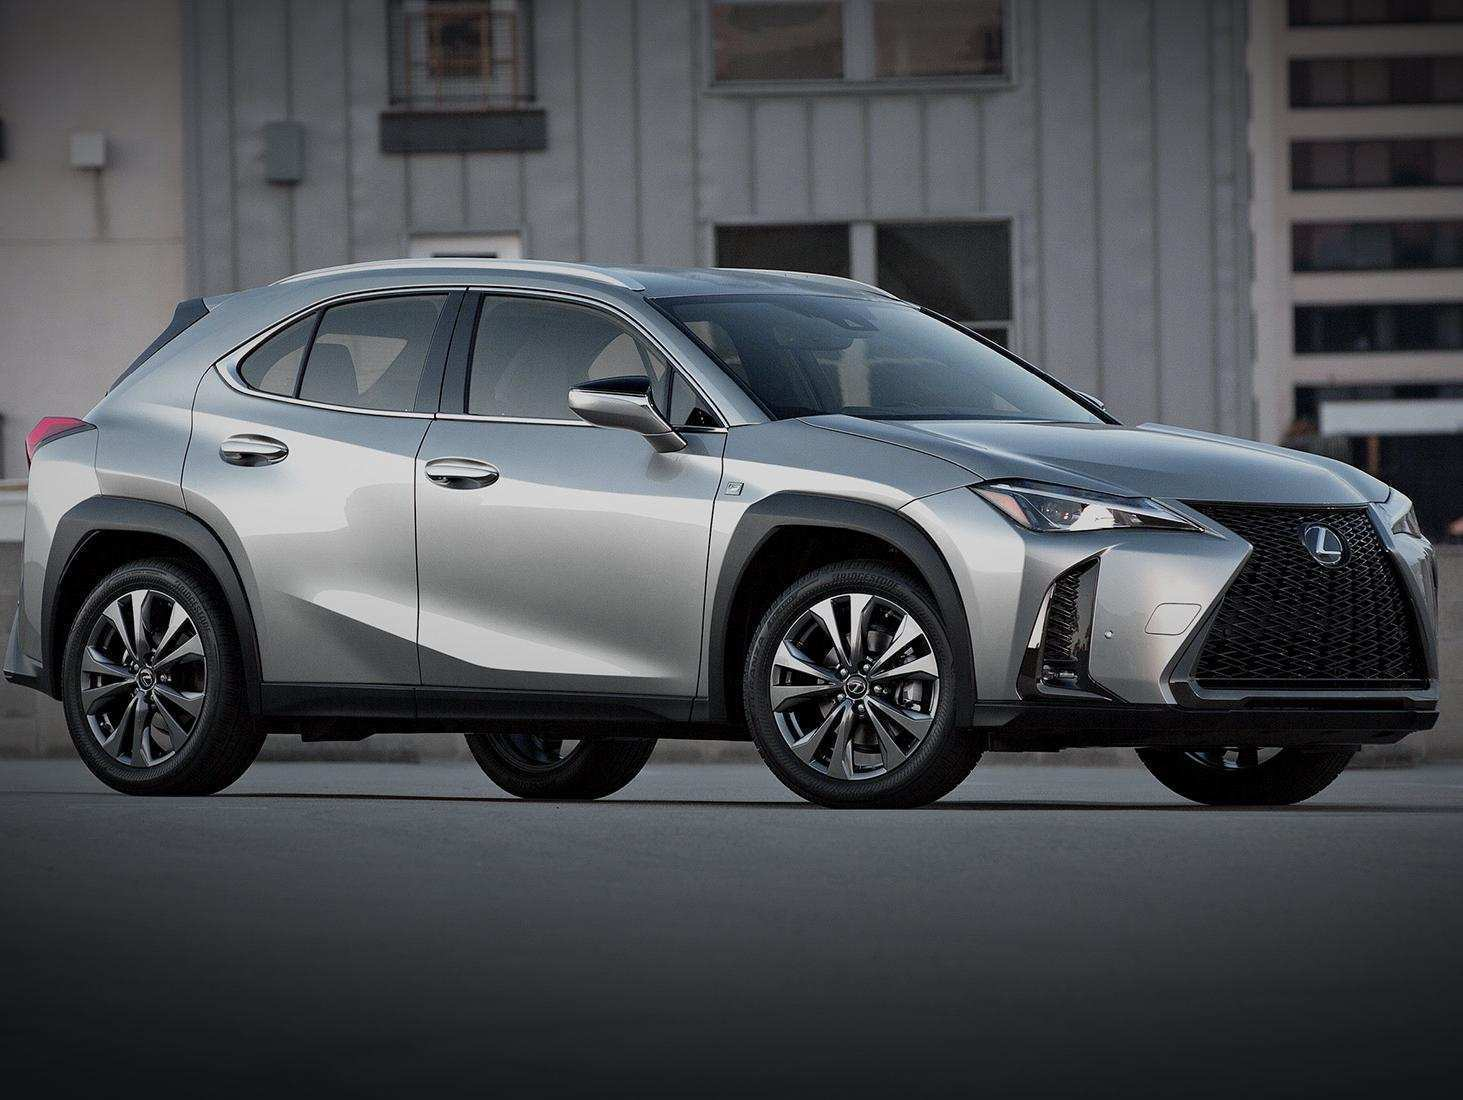 61 Gallery of 2020 Lexus Ux Exterior Date First Drive for 2020 Lexus Ux Exterior Date